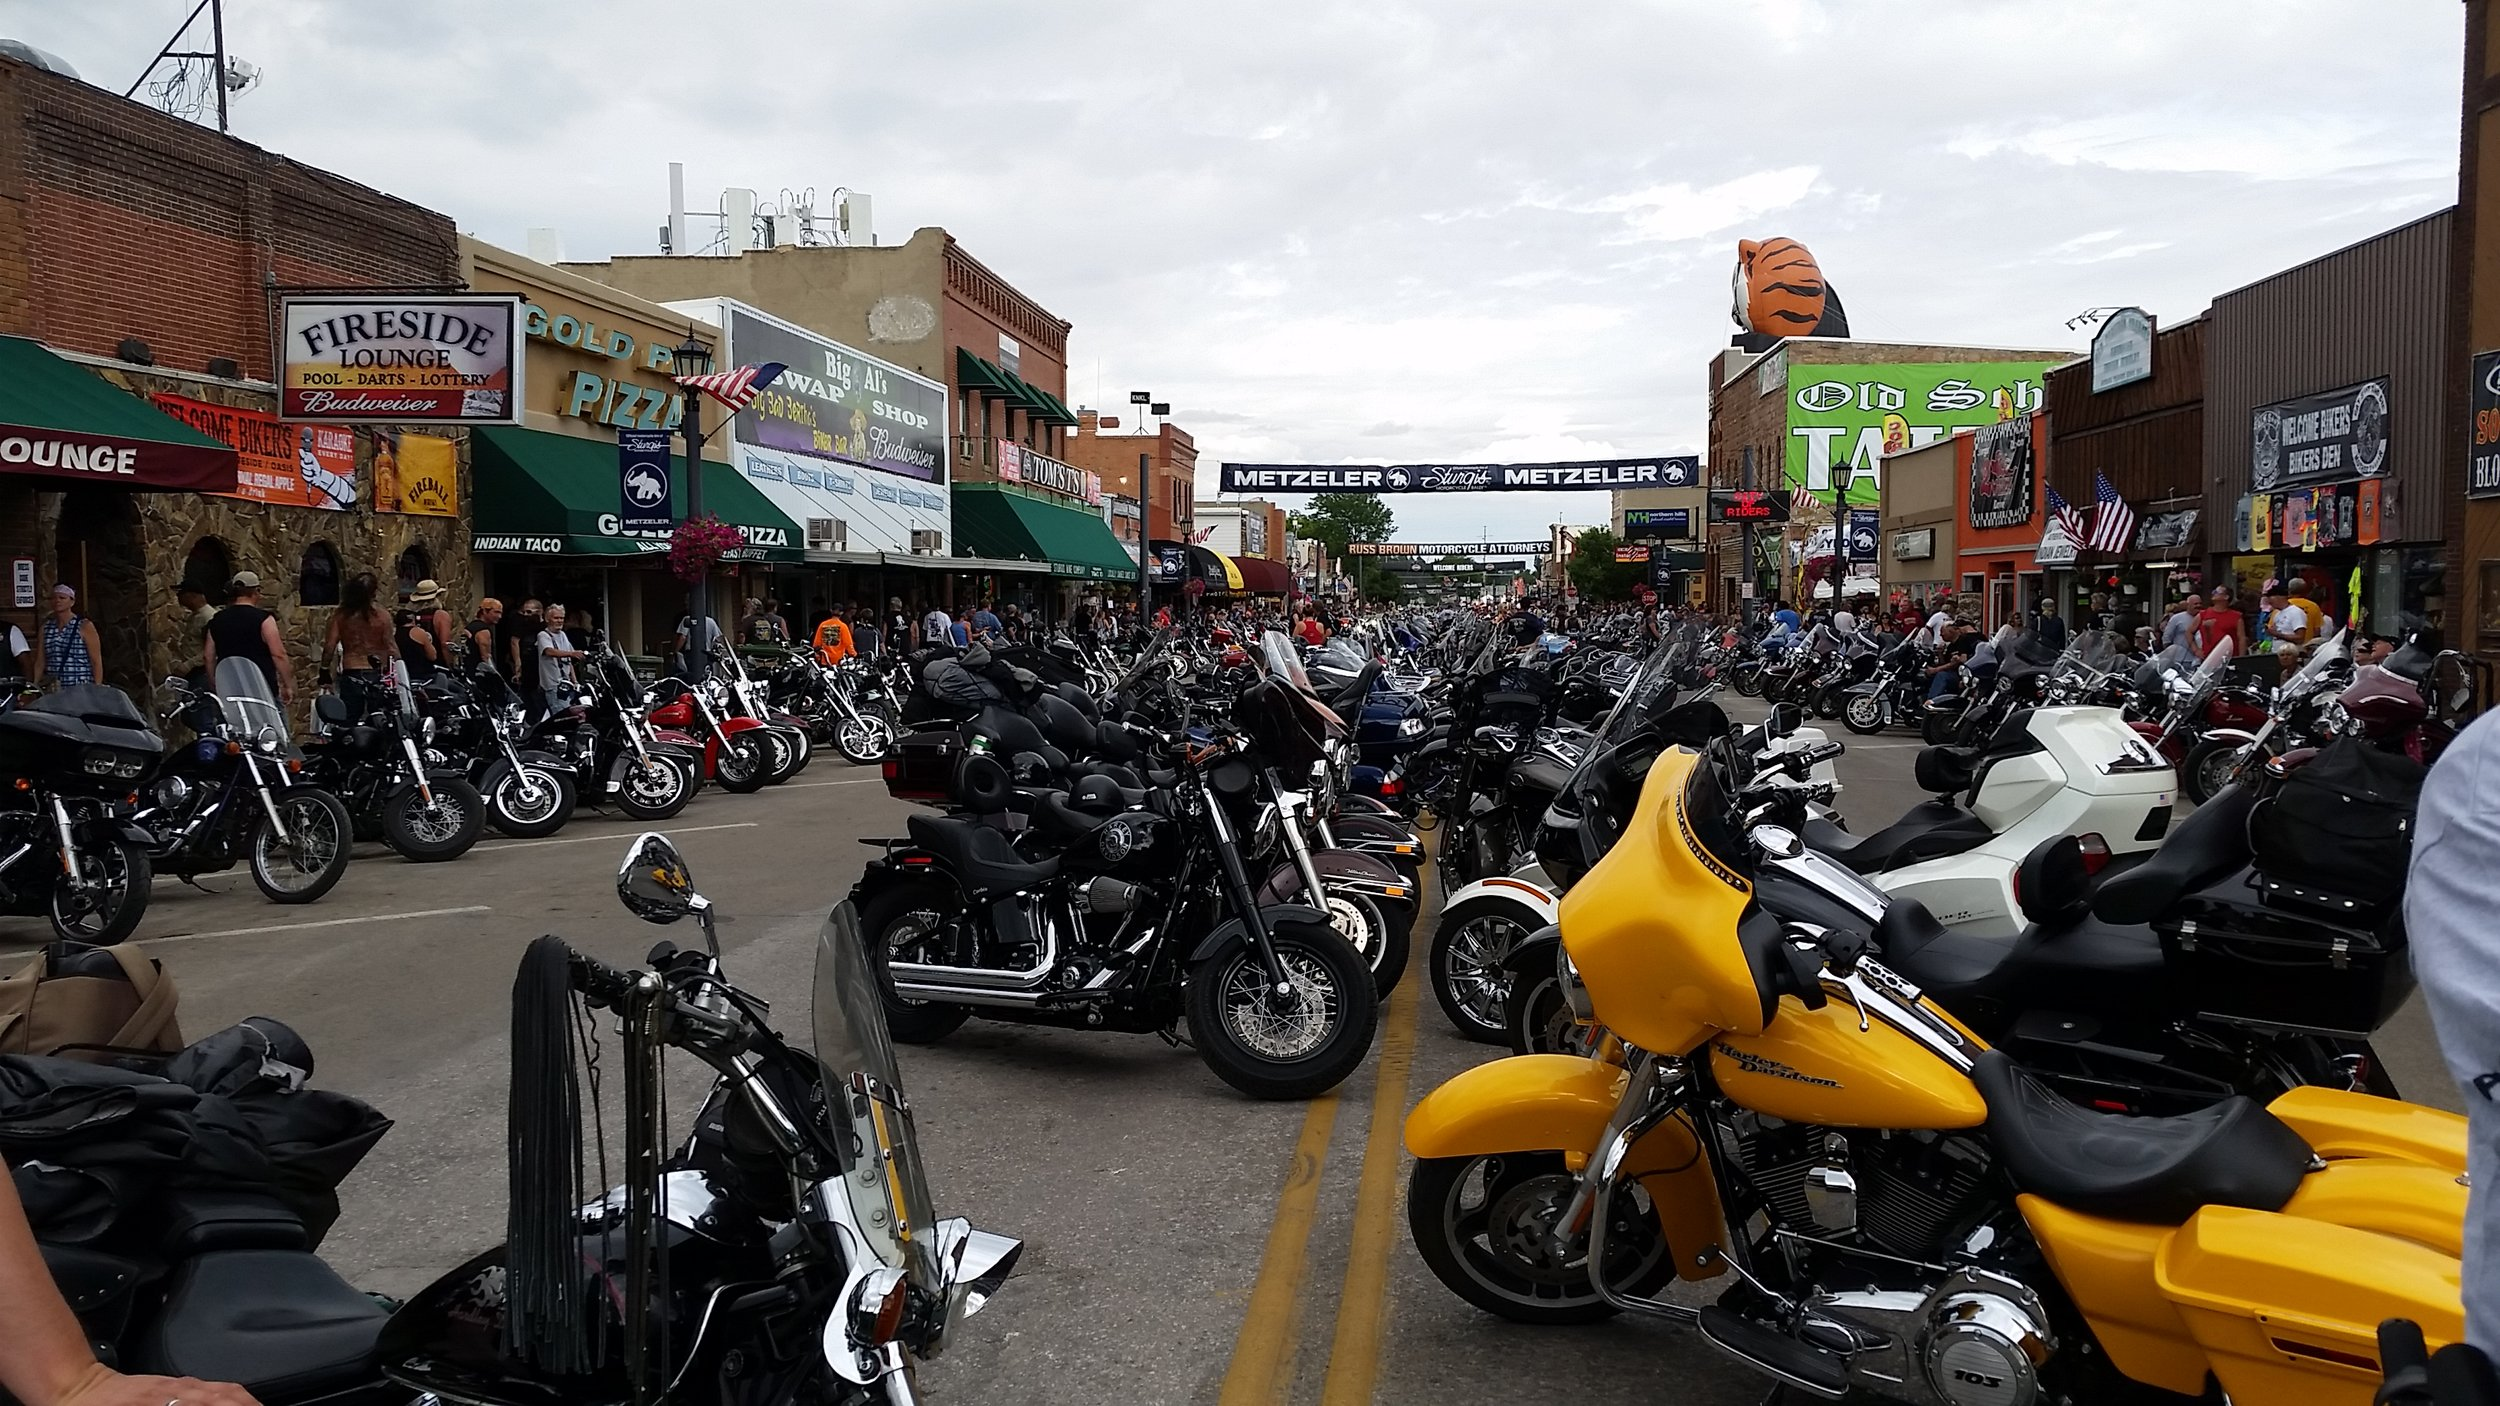 // Preparing for 'work' at Sturgis Motorcycle Rally • Sturgis, SD, 2016 //